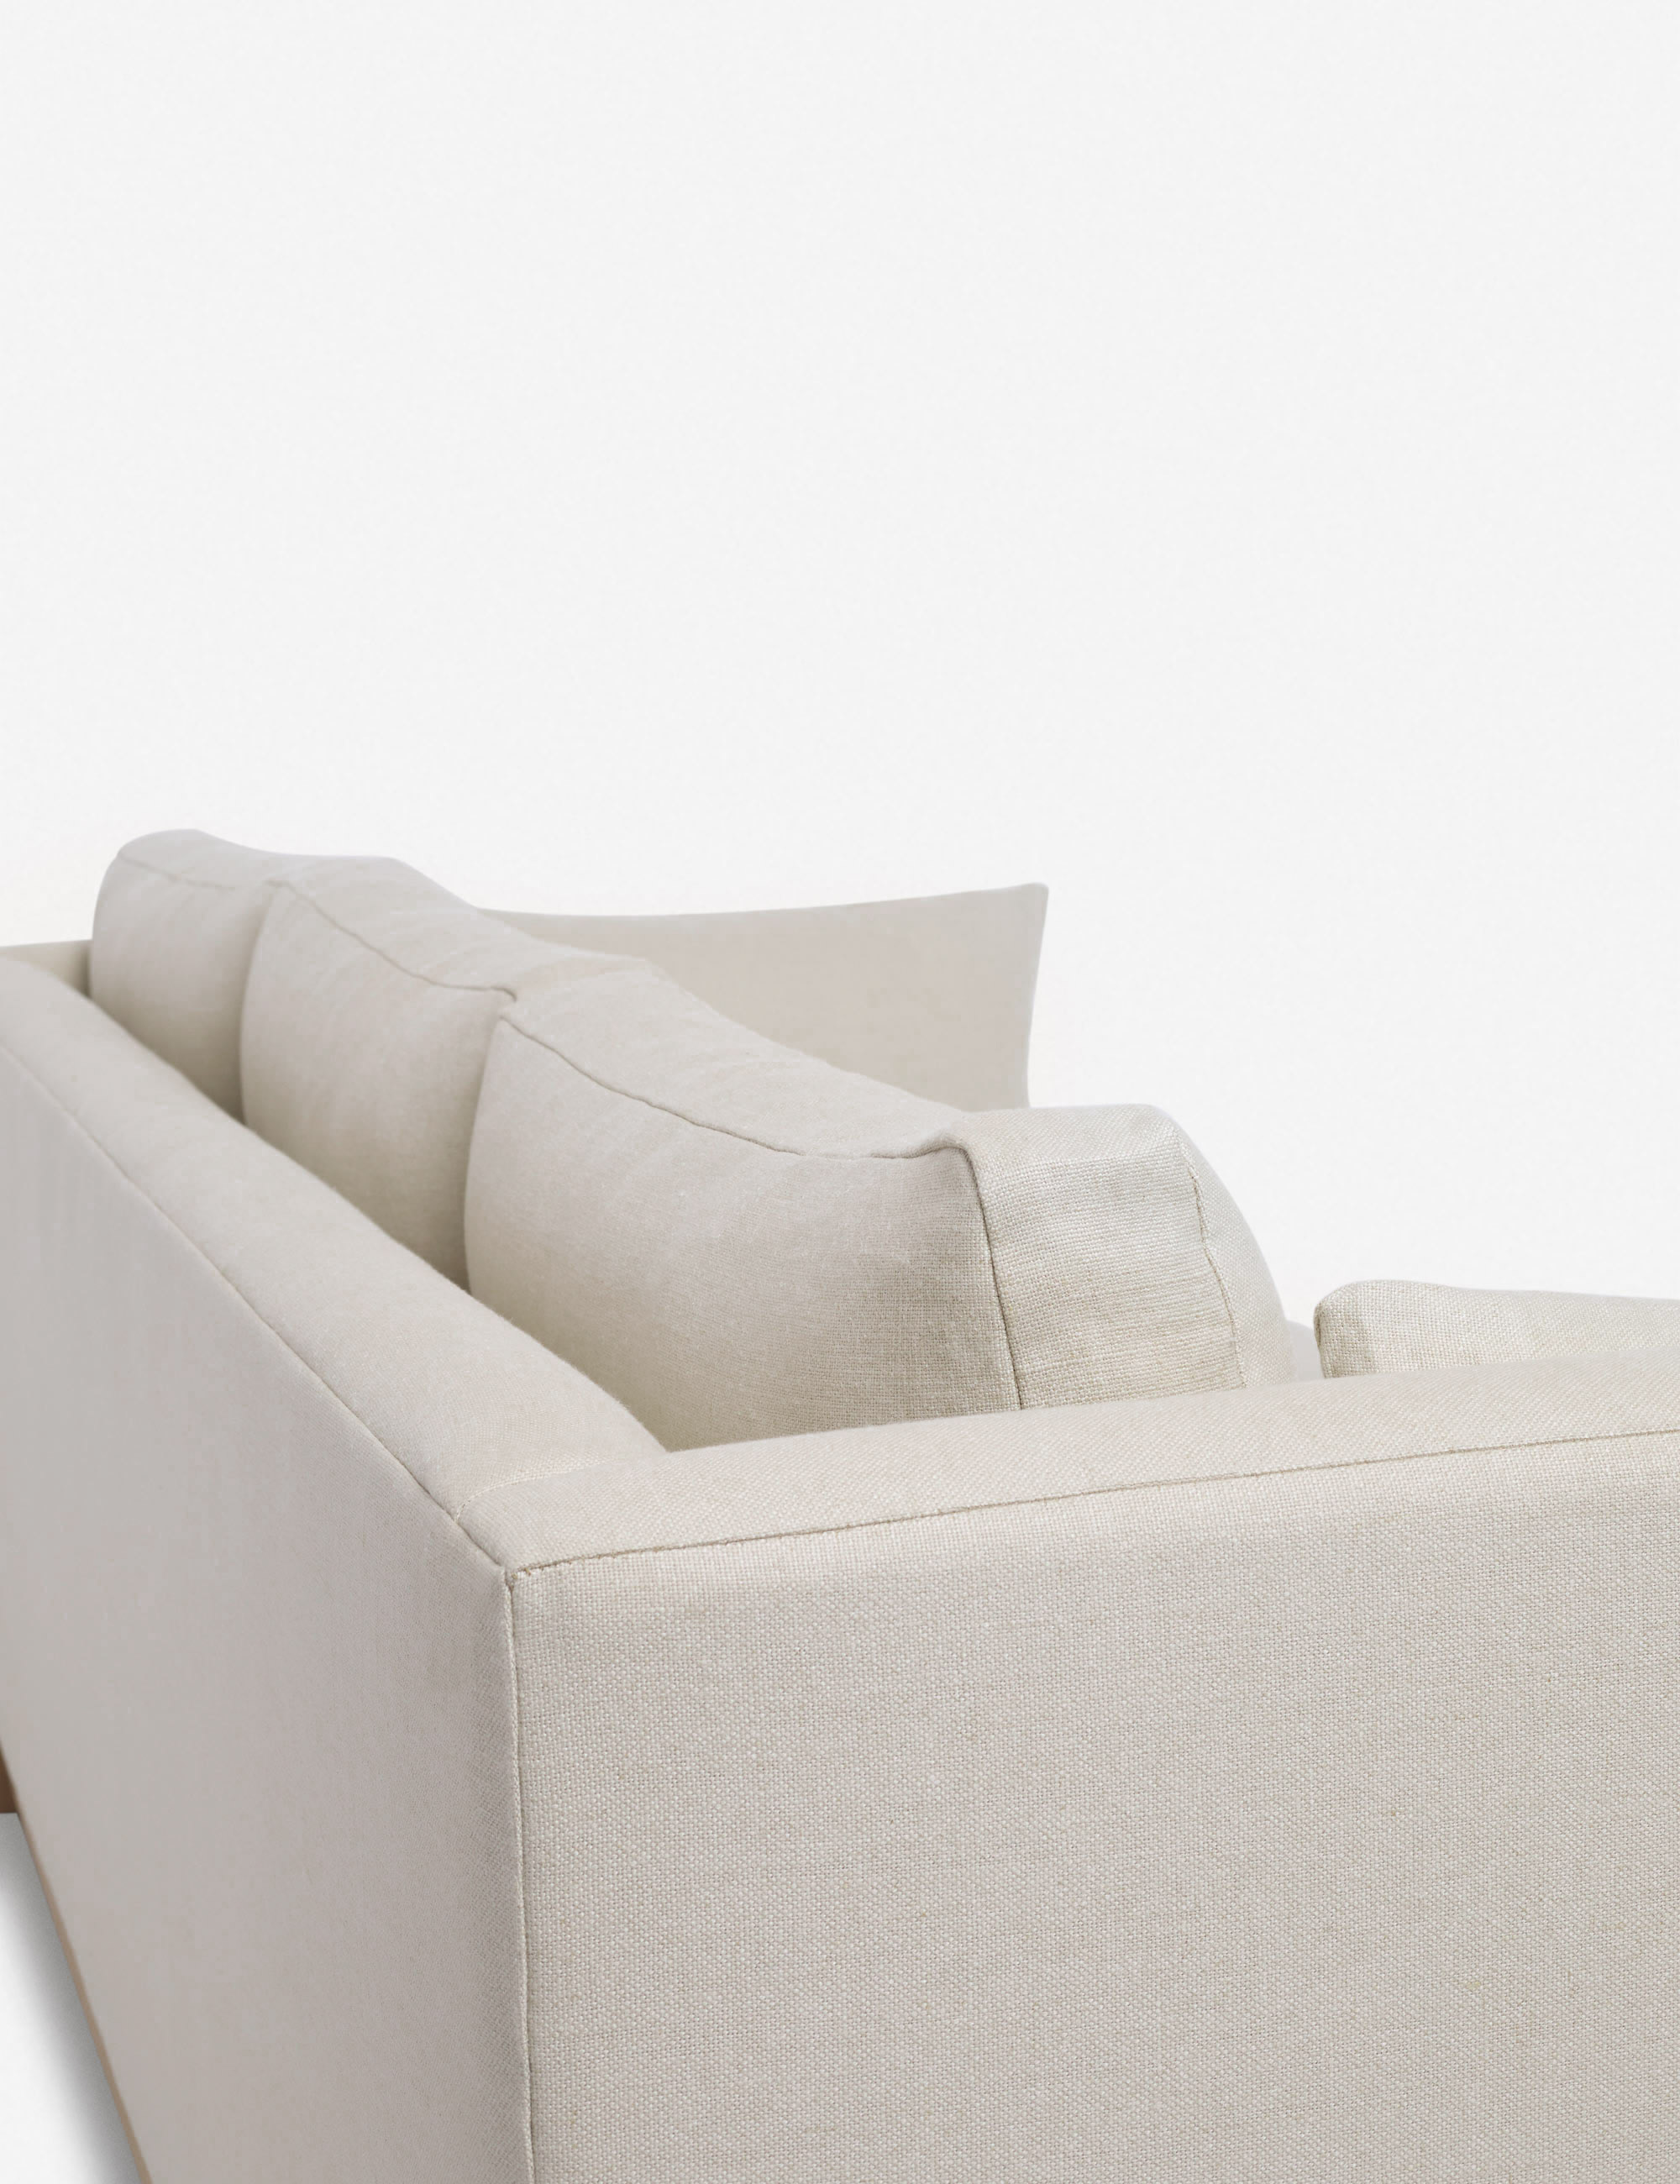 GINNY_MACDONALD_Hollingworth-Sectional-LAF-Linen-Natural-7